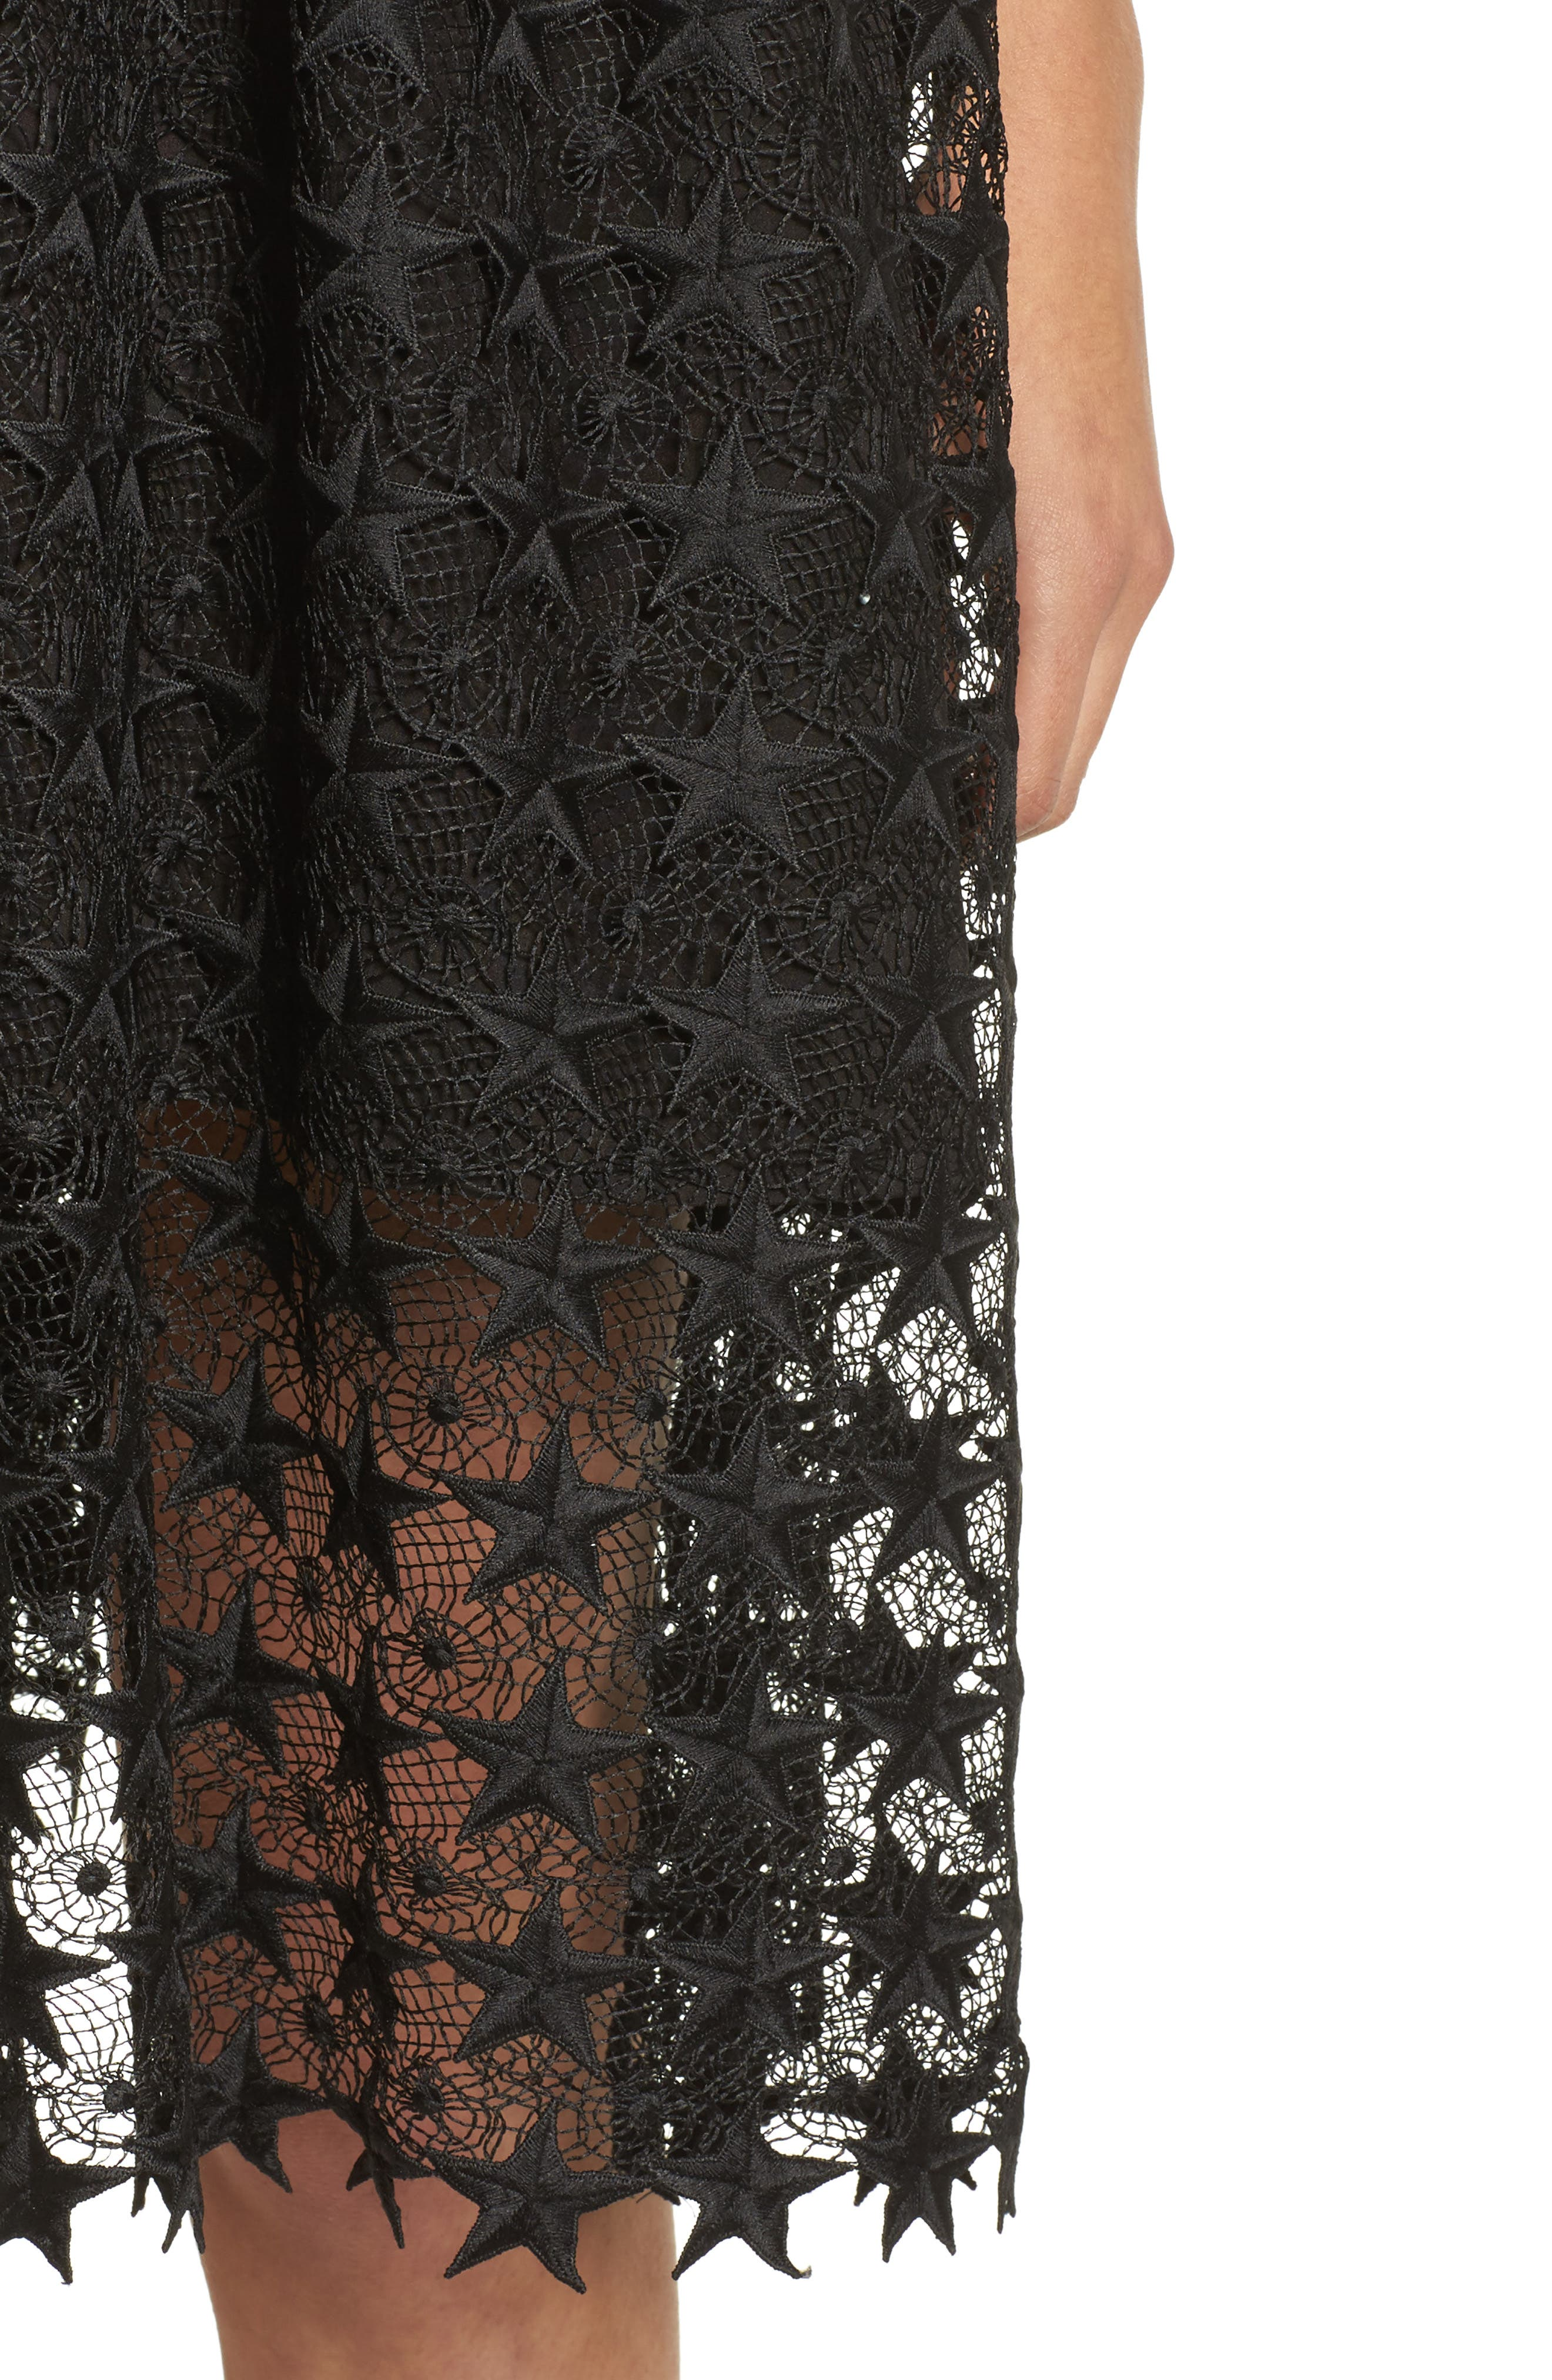 Star Lace Fit & Flare Dress,                             Alternate thumbnail 4, color,                             Black Star